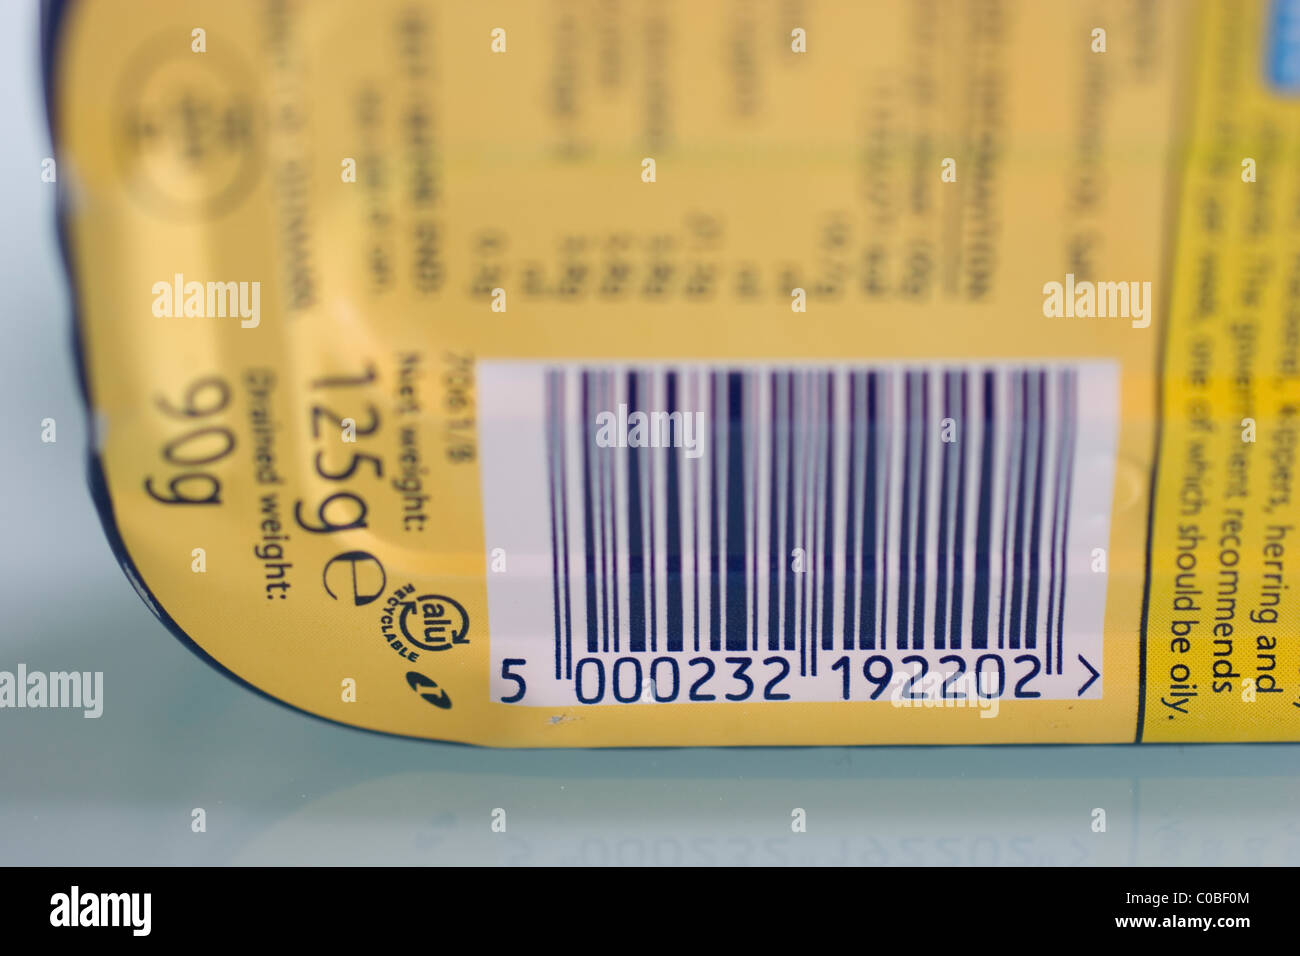 barcode on food item stock photo 34673988 alamy